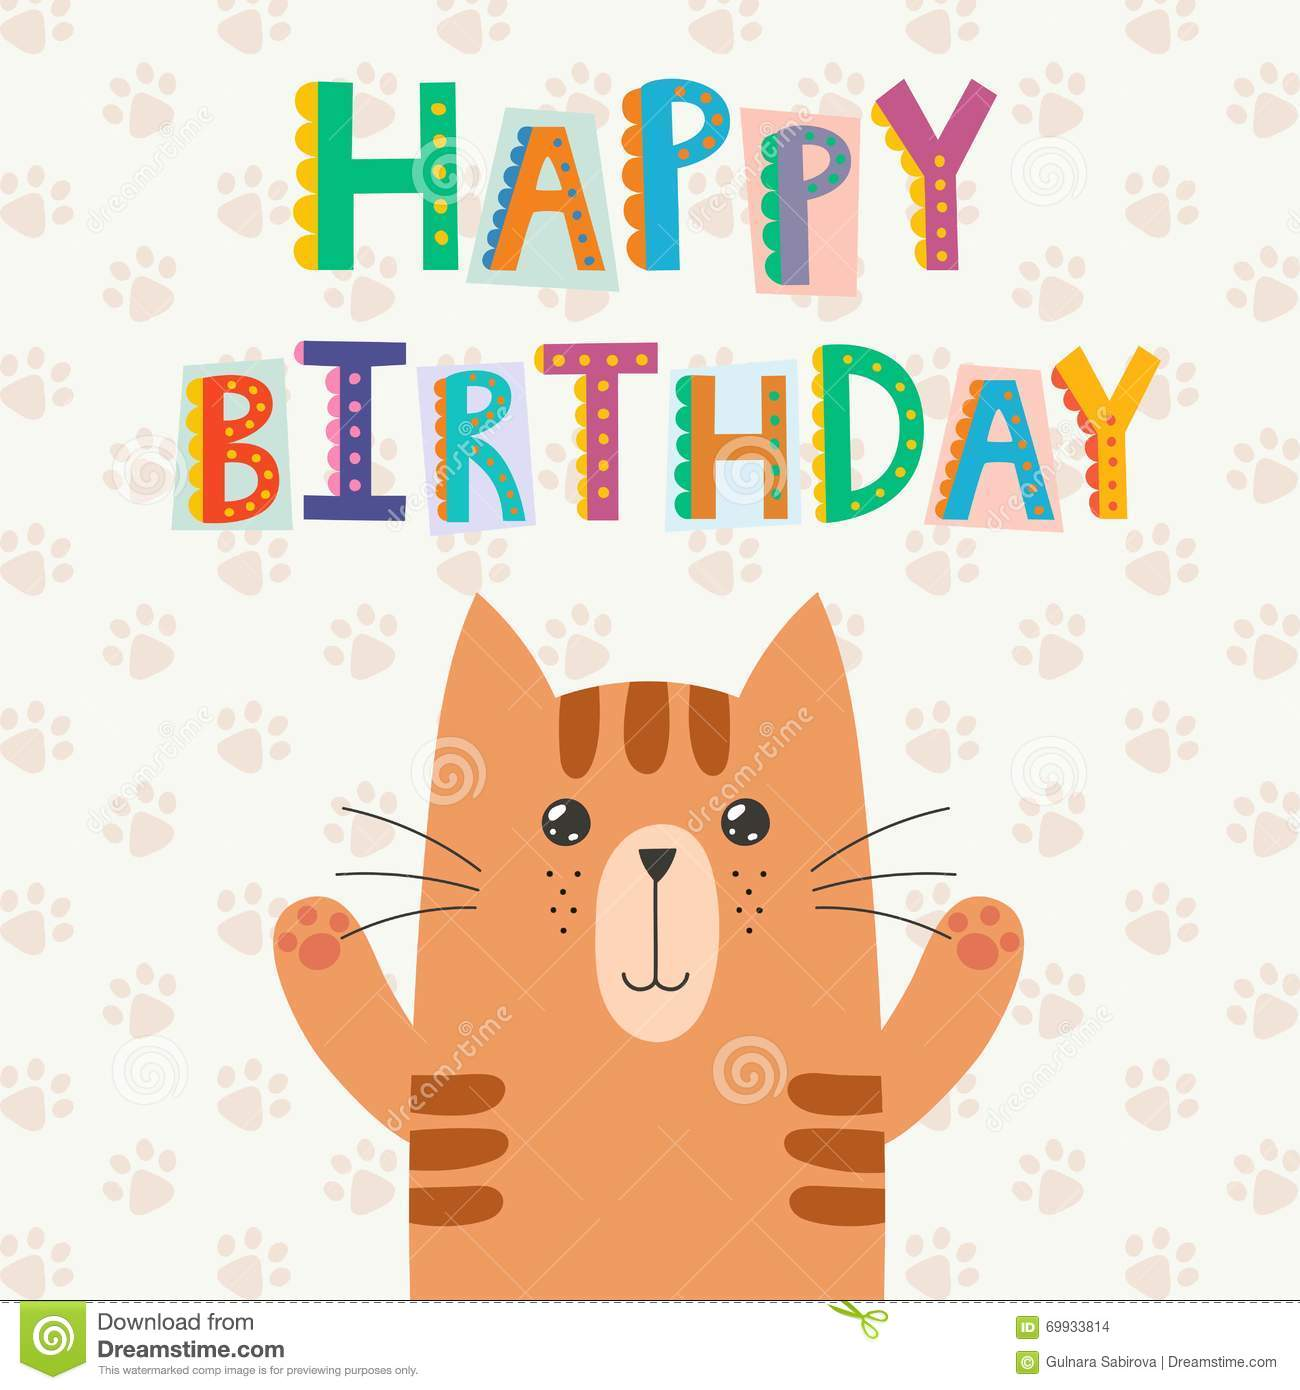 Happy Birthday Illustration Font ~ Happy birthday greeting card with a cute cat and funny text stock vector image